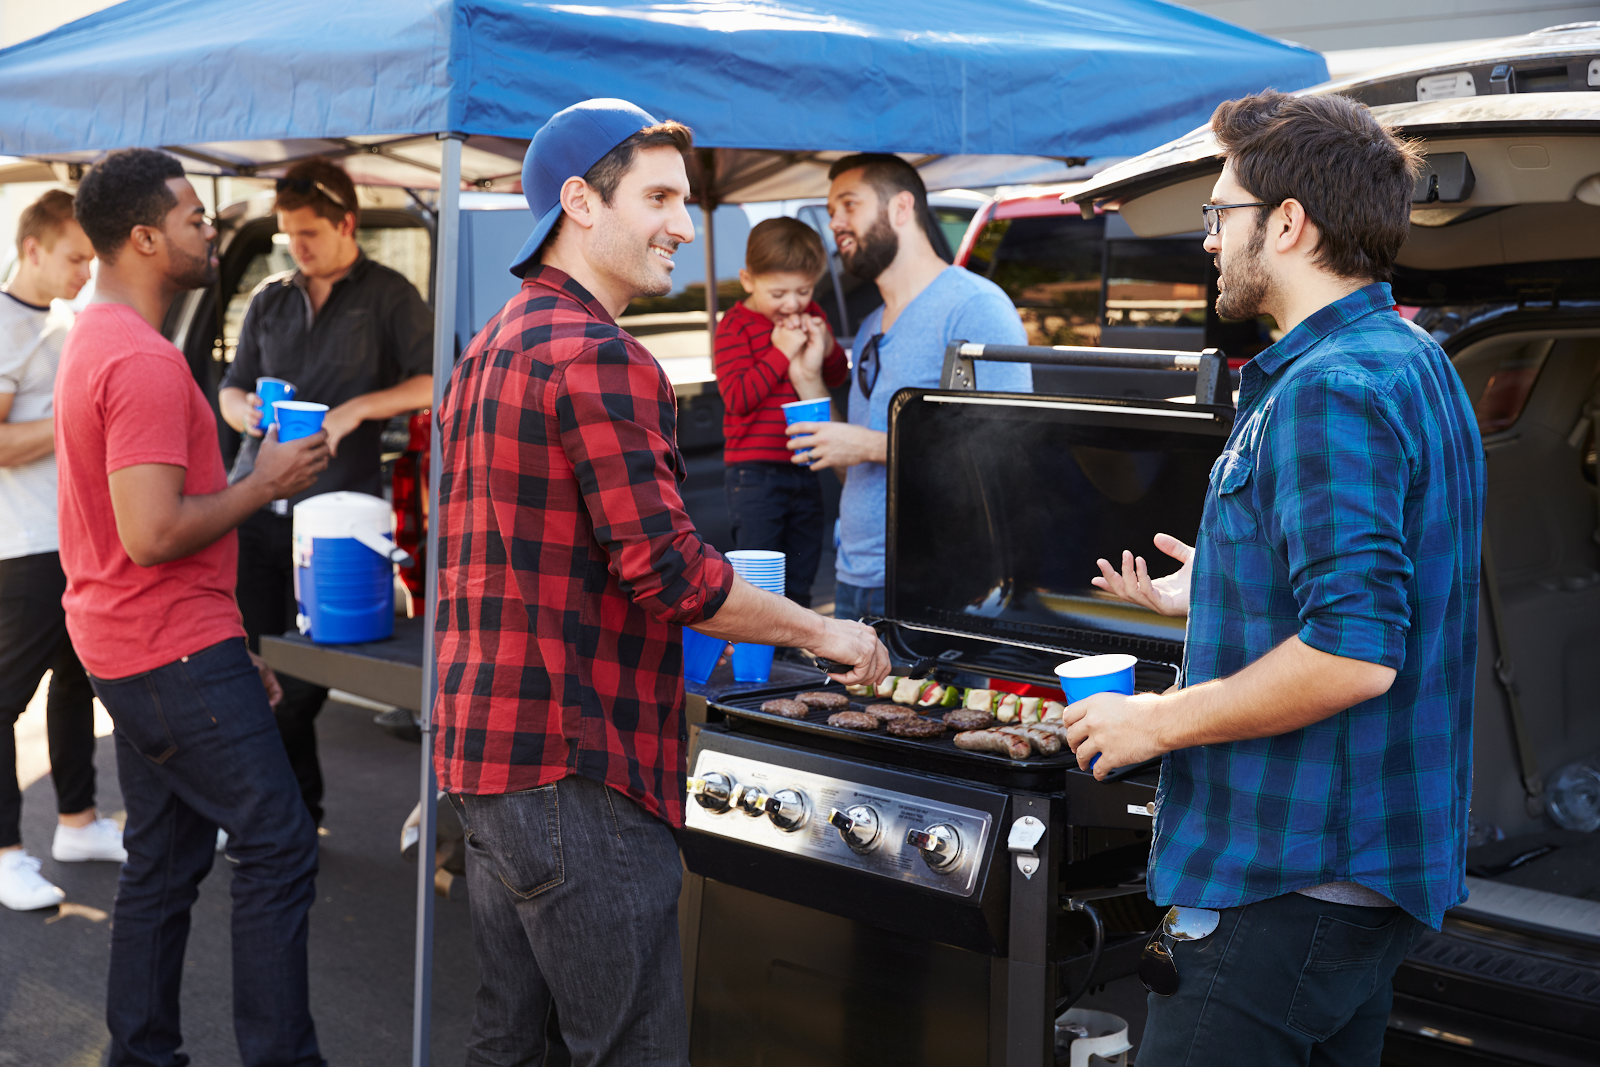 A group of people at an outdoor event with one person grilling on a griddle